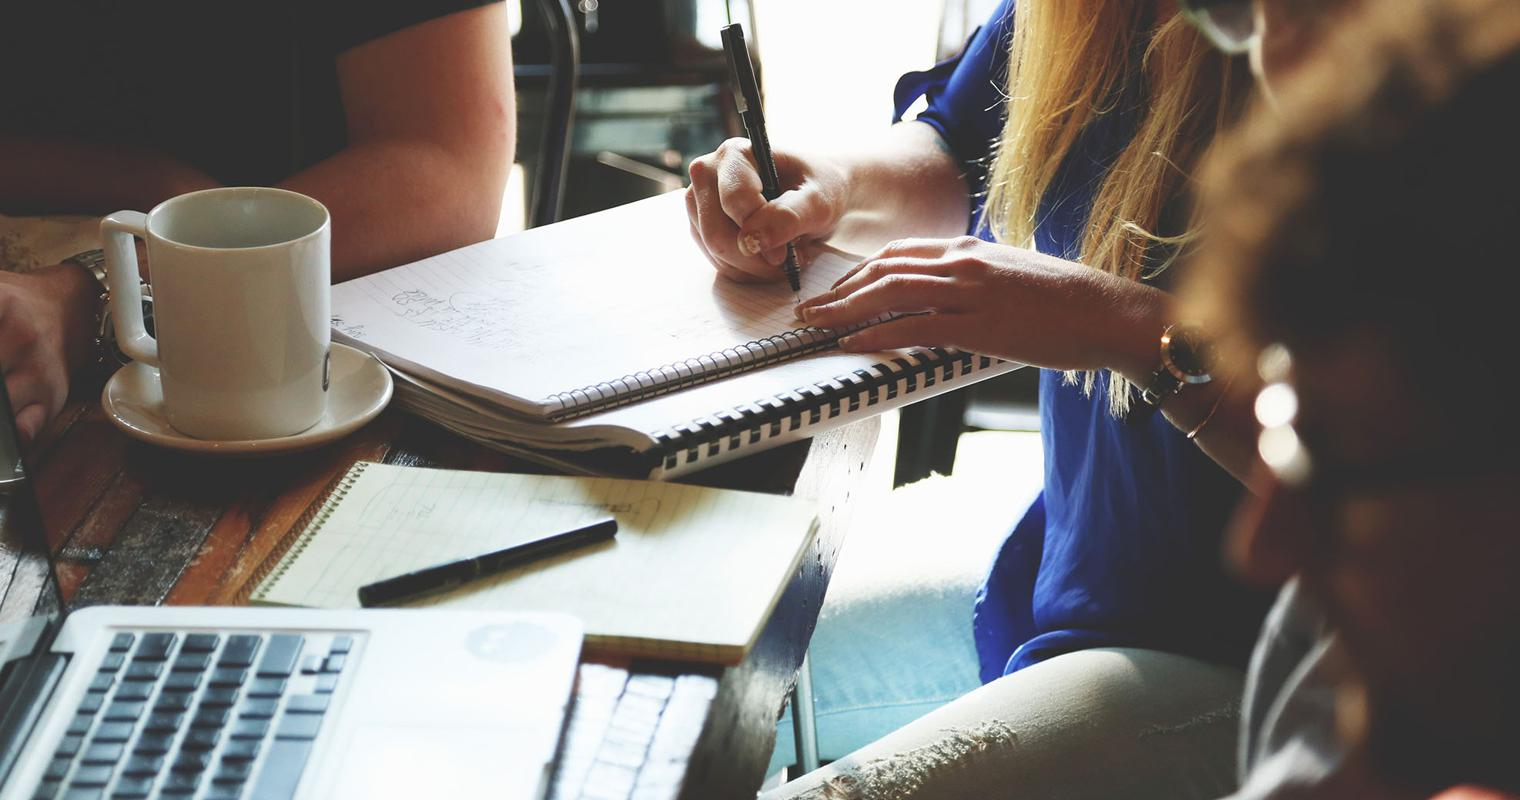 The Top 4 University Recruiting Trends To Know In 2019